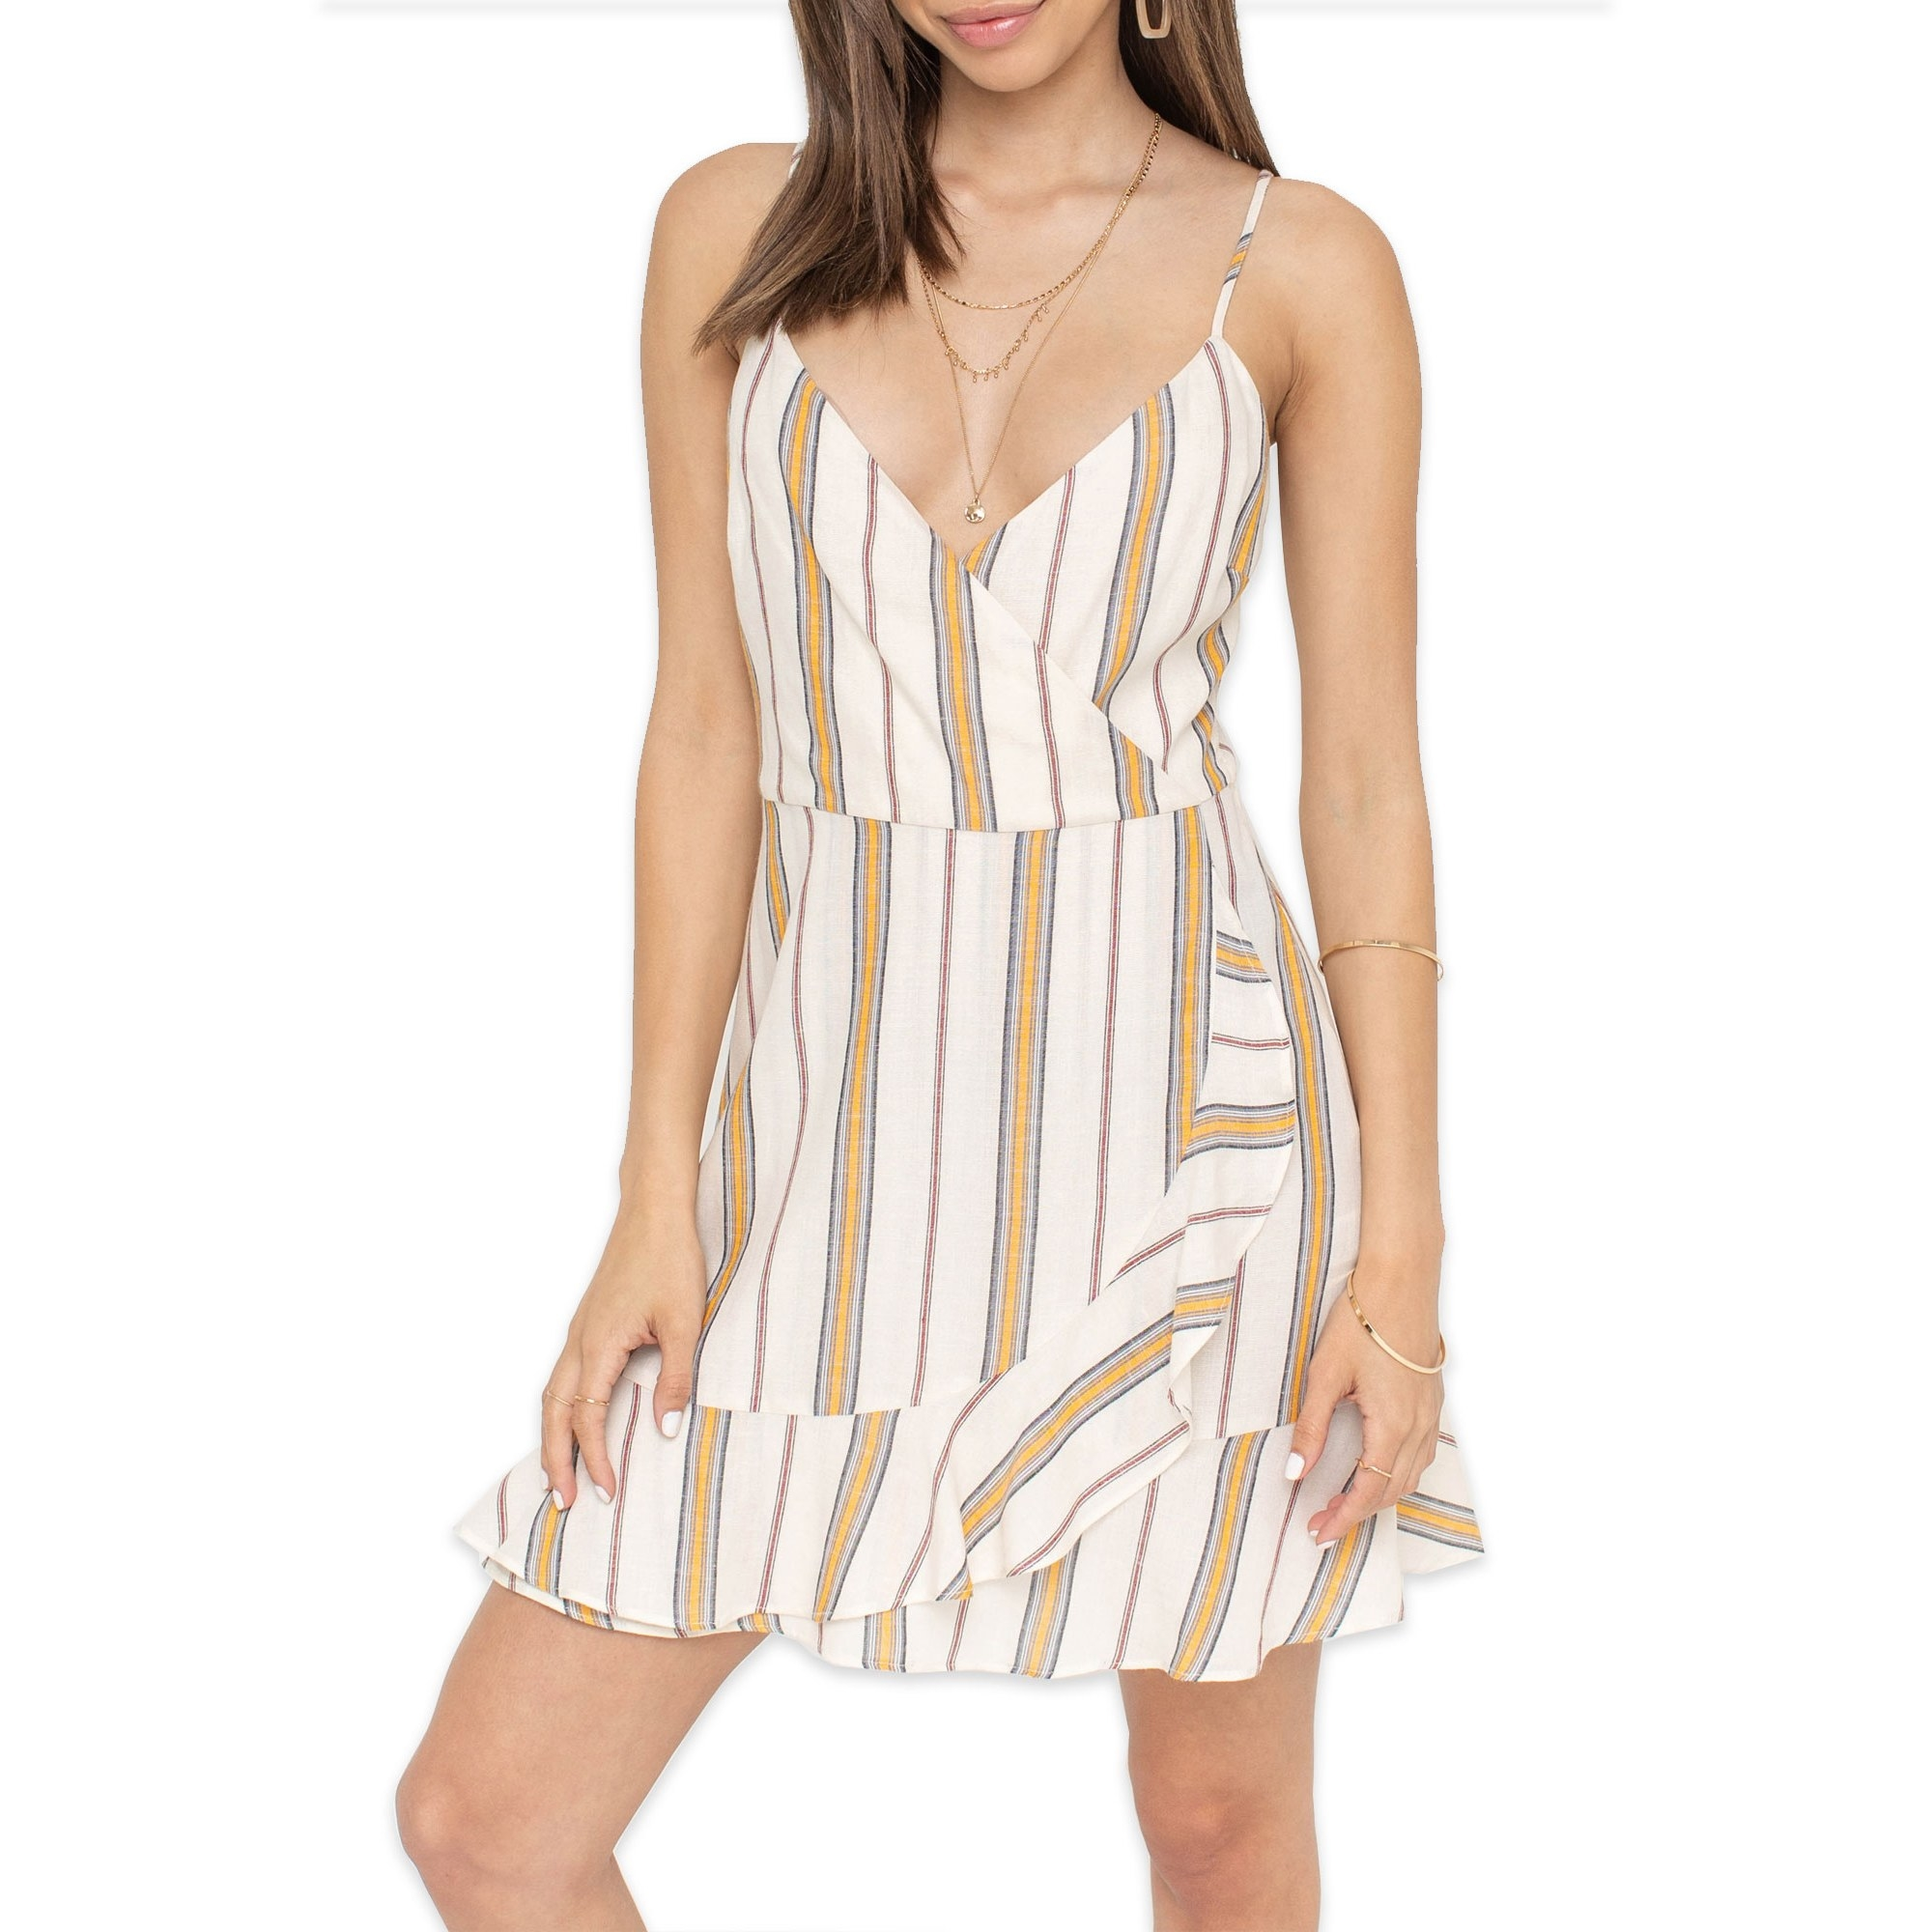 The white and brown striped ruffled mini dress